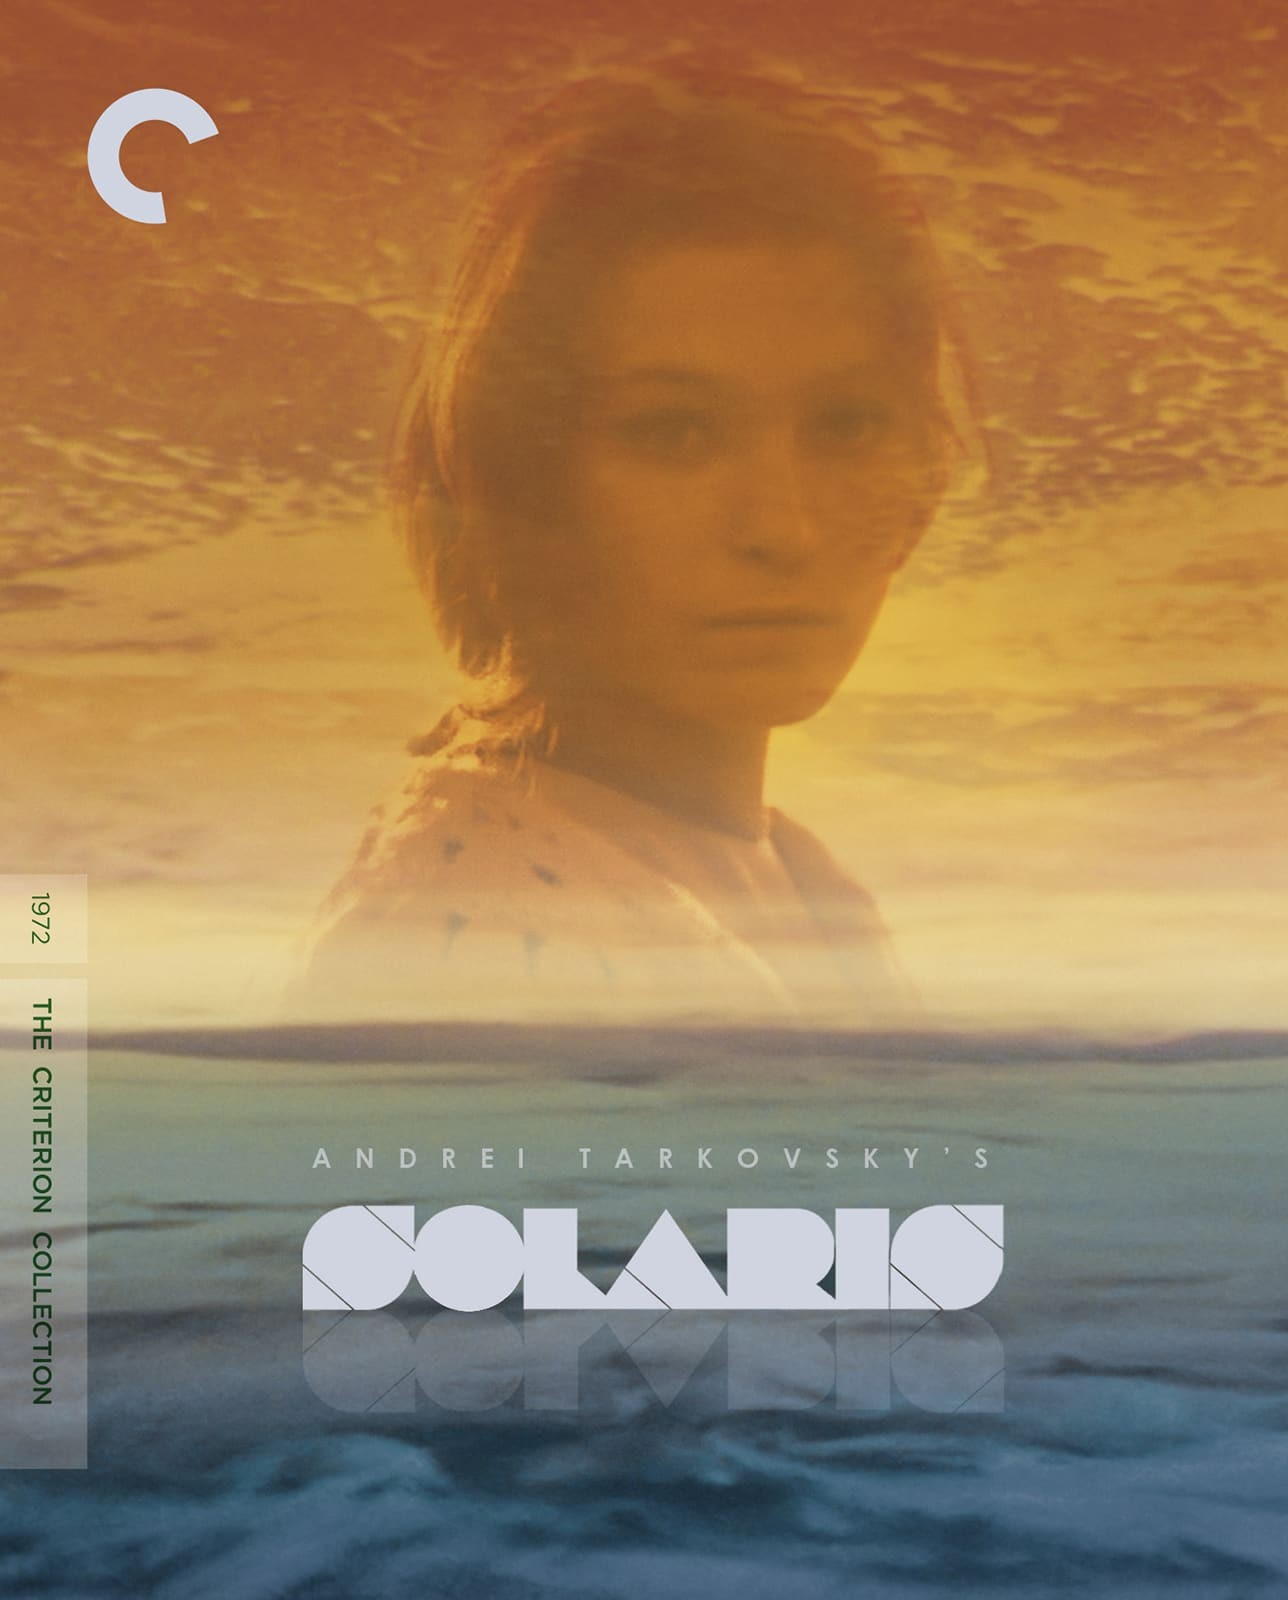 Image result for solaris criterion poster